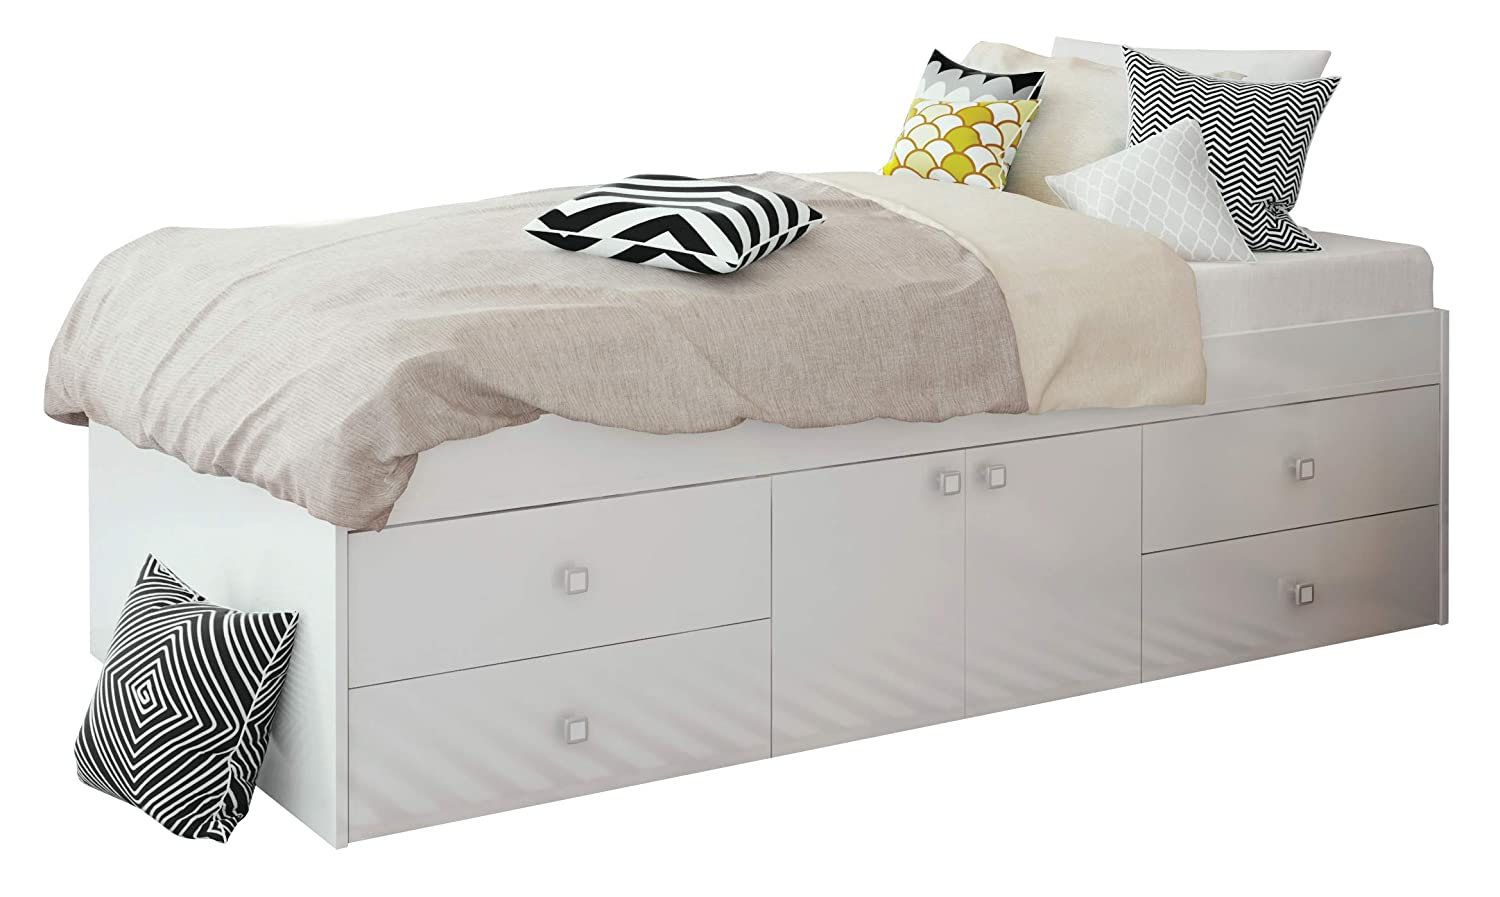 Cama individual de 90 x 190 cm con 4 cajones, color blanco: Amazon ...